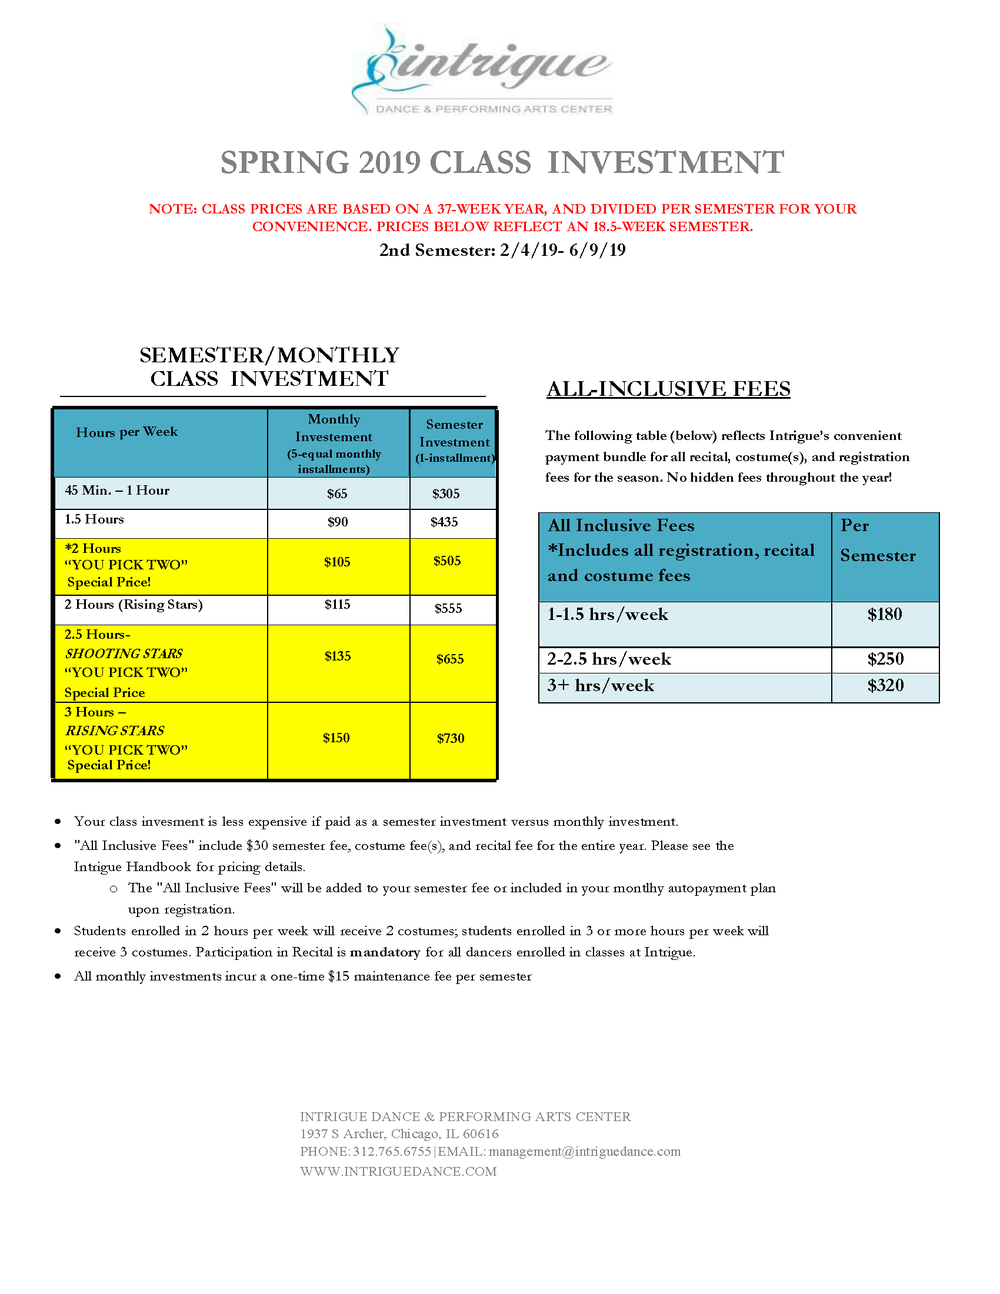 SPRING 2019 PRICING-REC NEW STUDENT.png